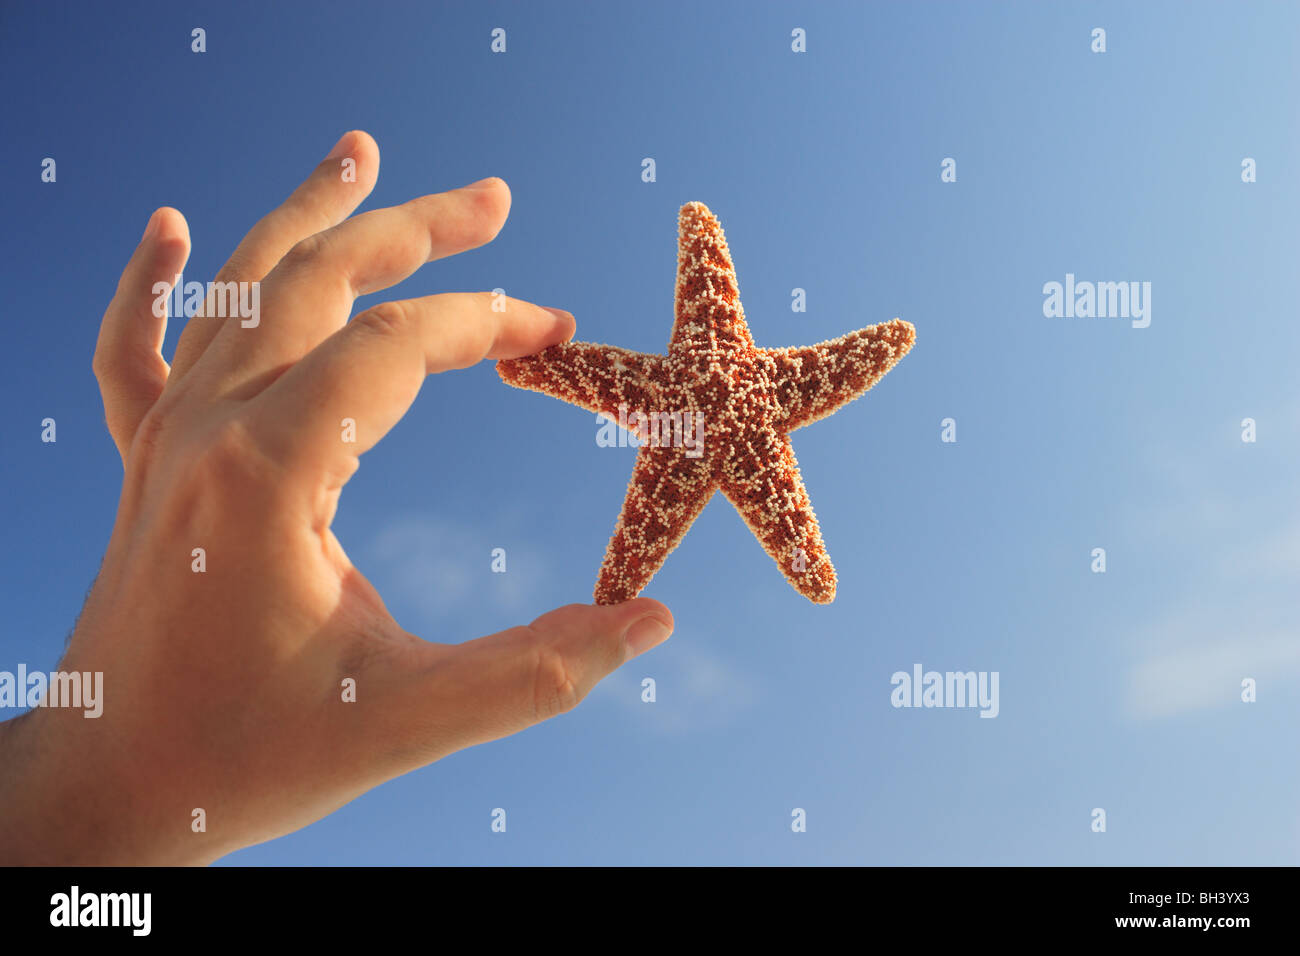 Close up of a man's hand holding a small starfish in the air against a blue sky - Stock Image